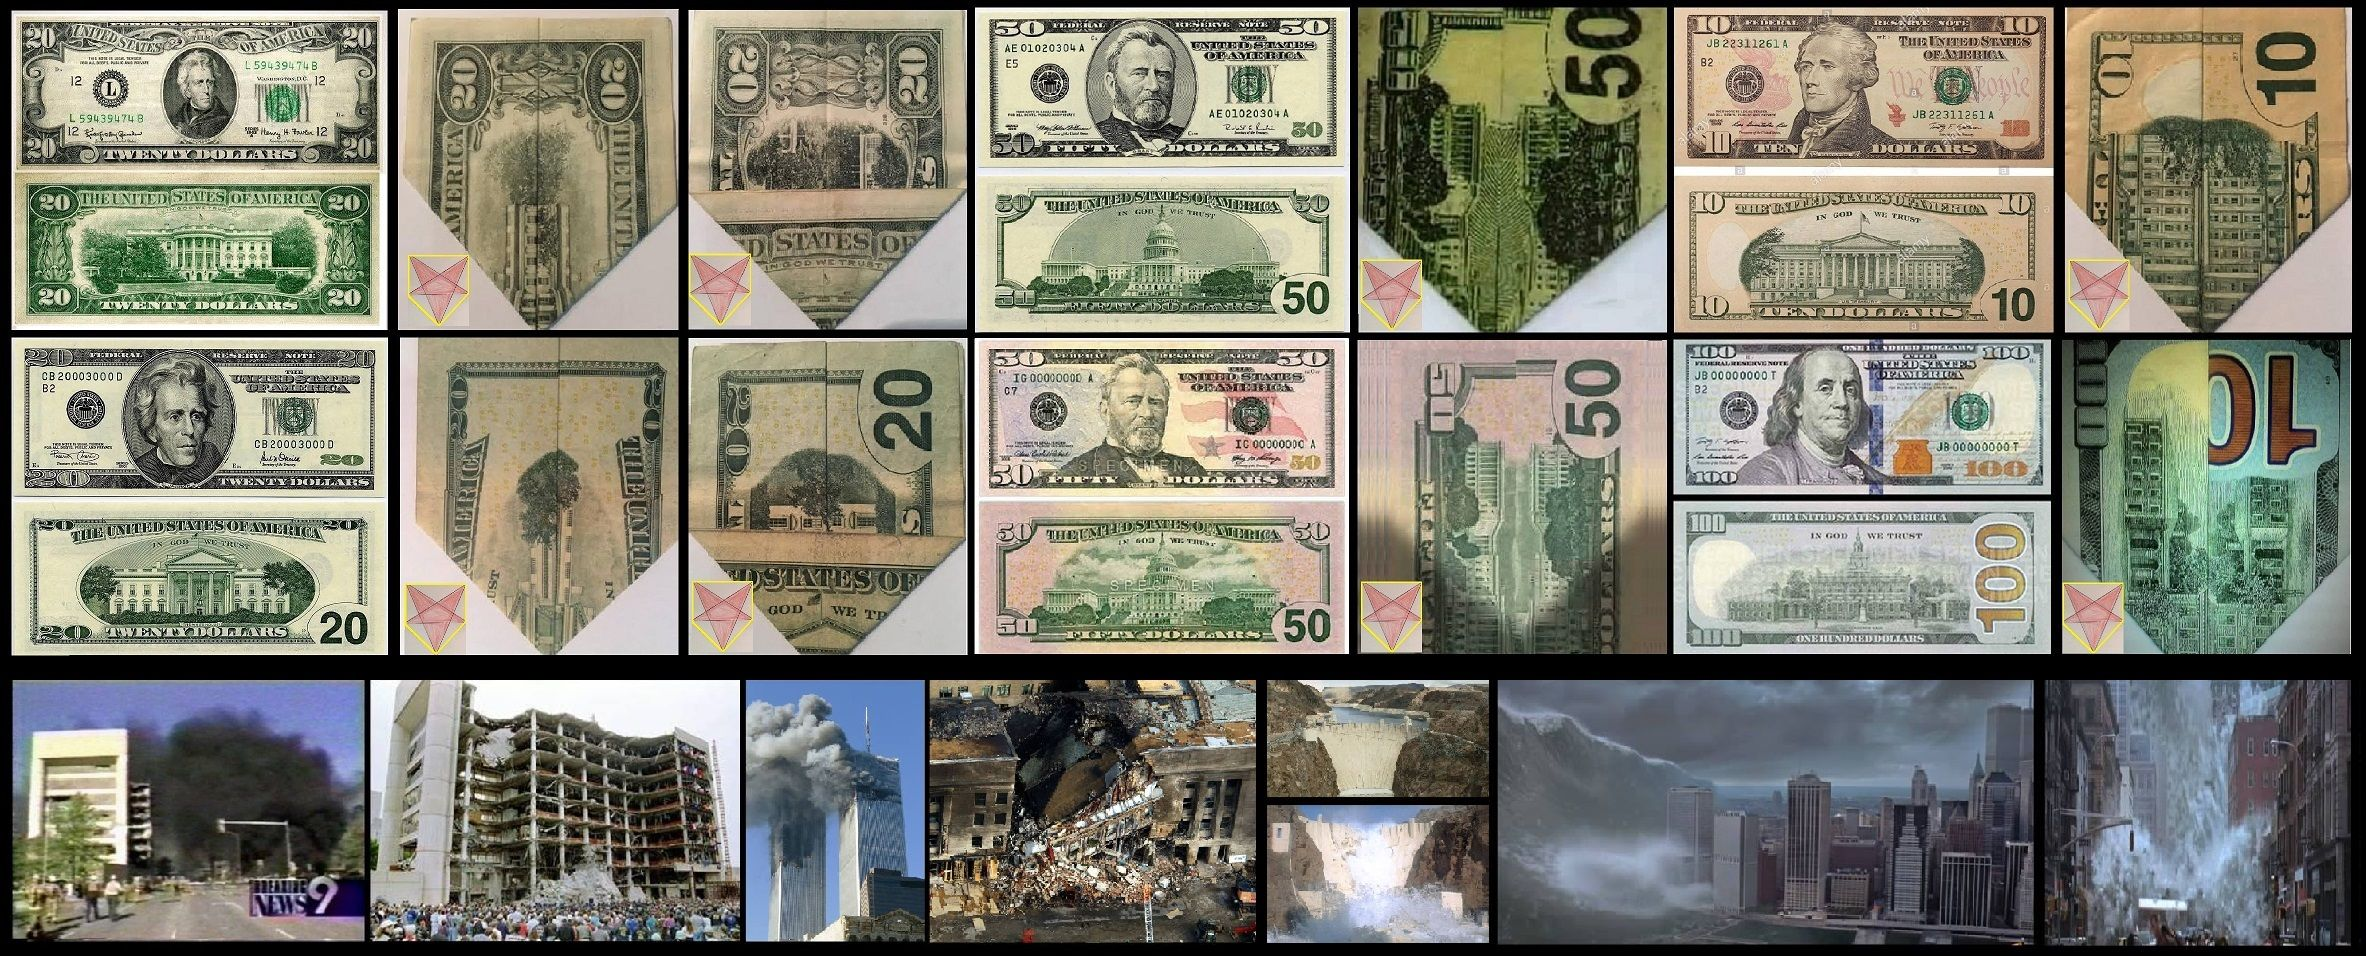 It's All On The Money & The World Will Be Flipped Upside